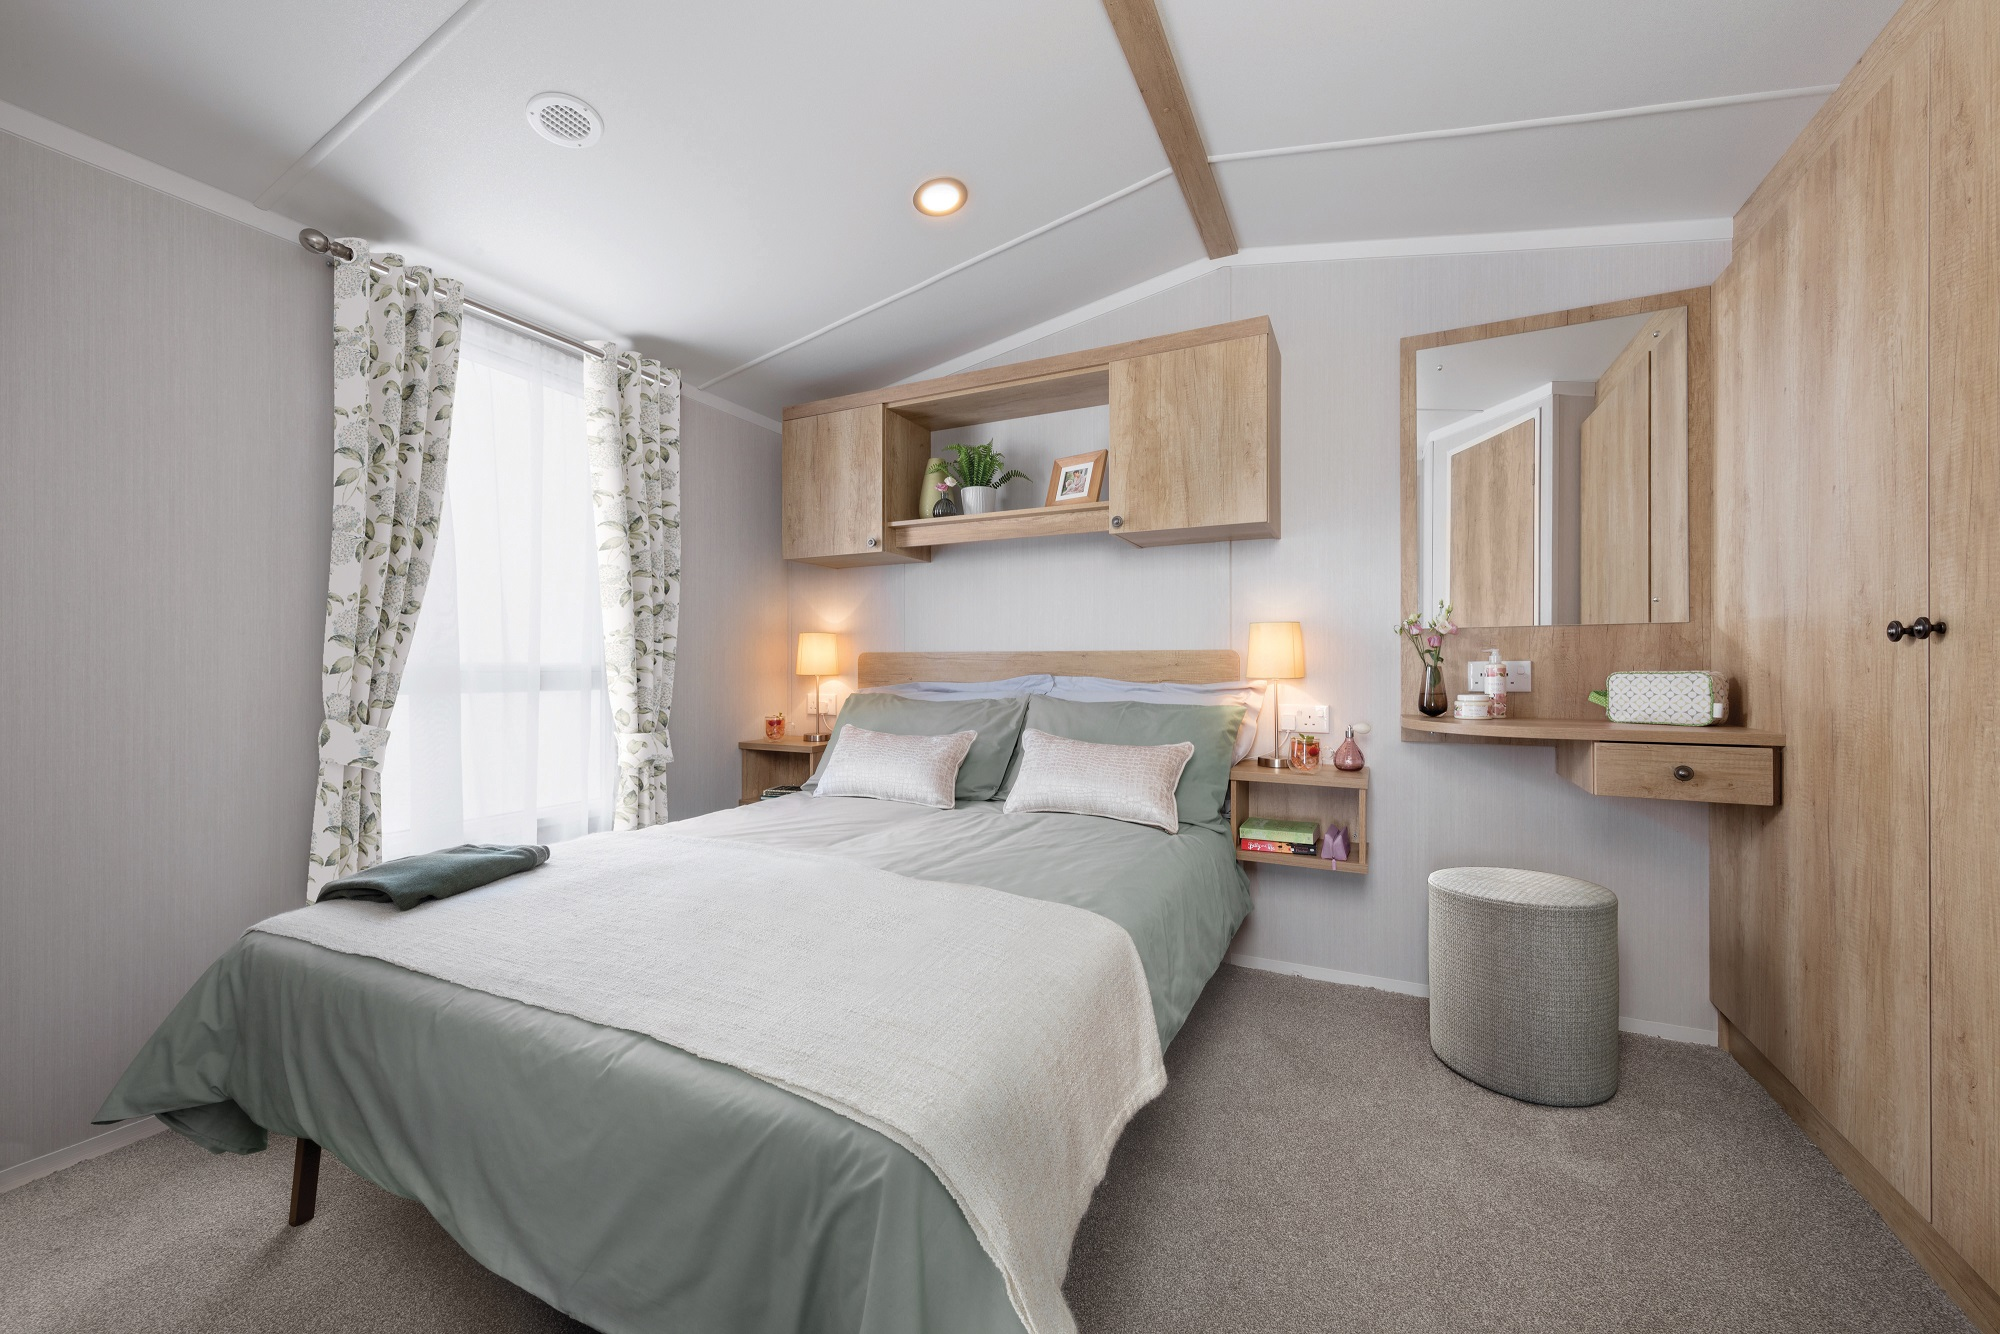 Swift Burgundy: New Static Caravans and Holiday Homes for Sale, On Order Large Image 3